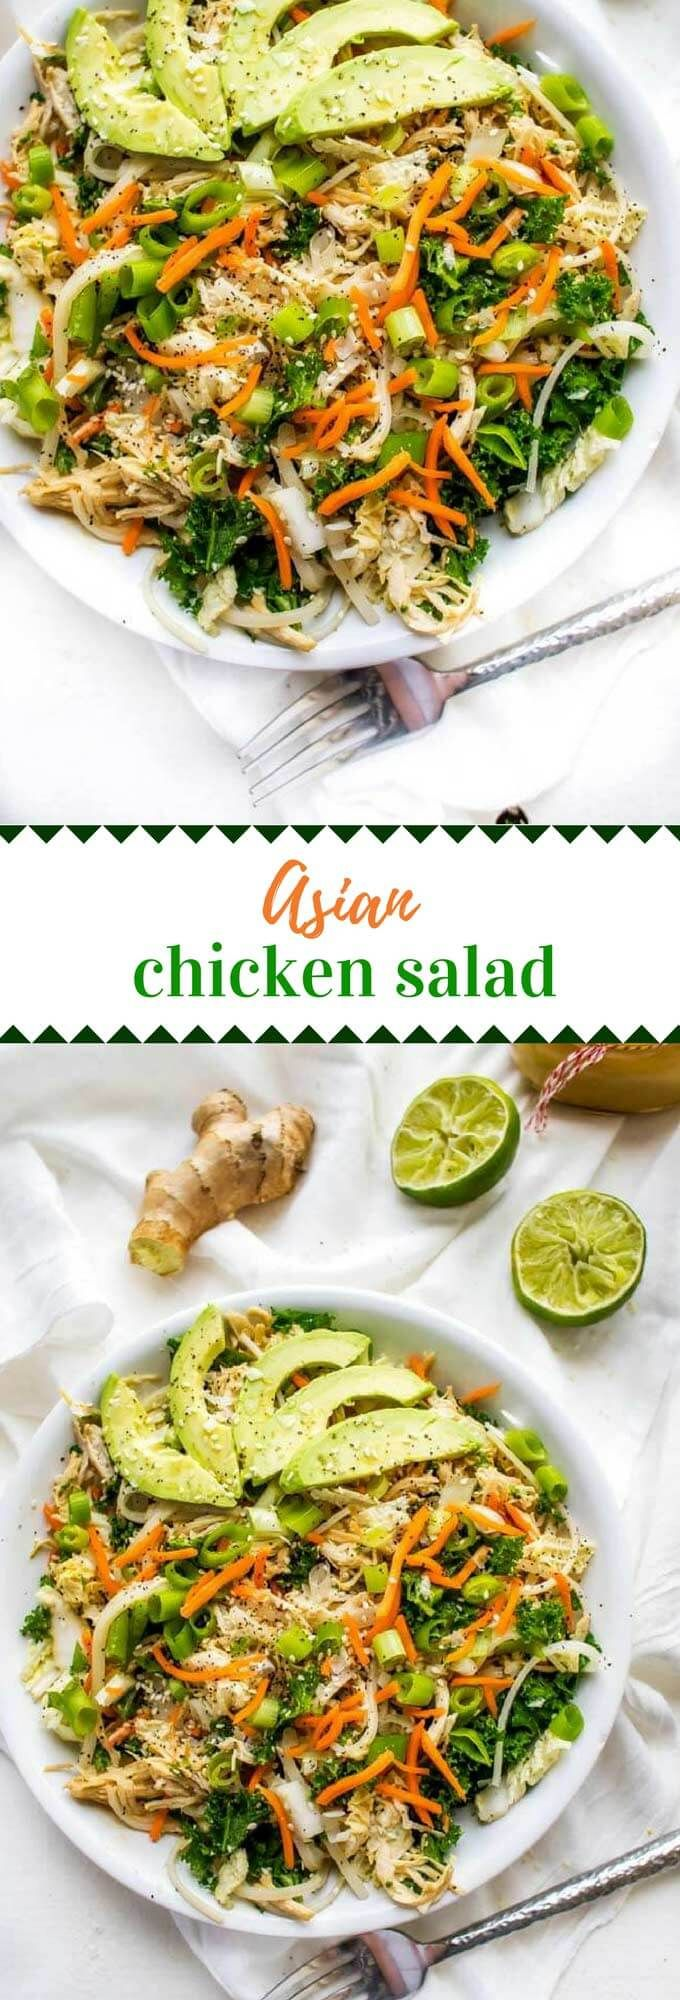 This Asian Chicken Salad recipe is an easy healthy meal!  With noodles and a delicious Asian, this is a salad you will crave. #saladrecipe #glutenfree